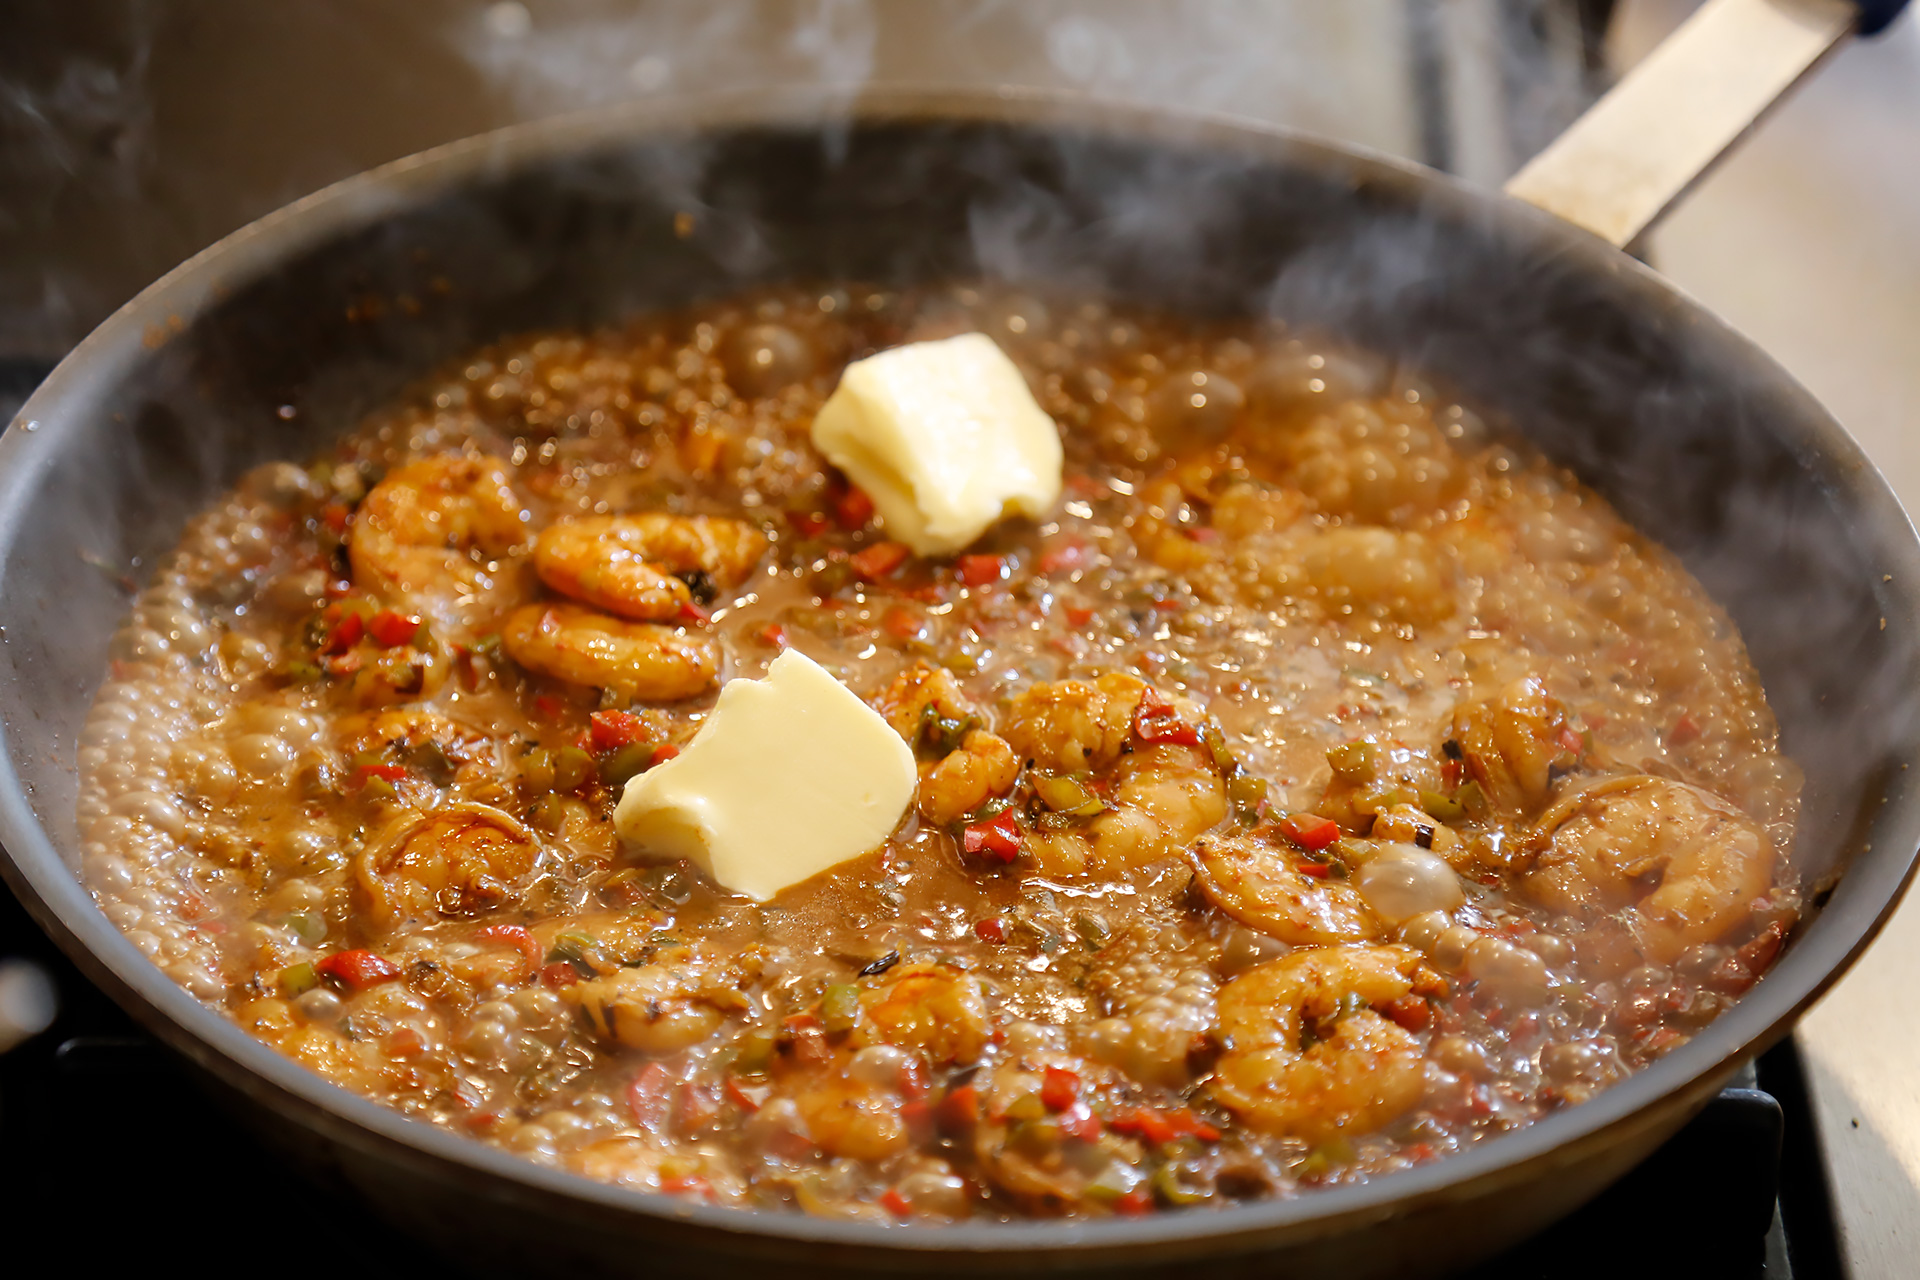 Add Creole sauce and cream, and bring to a simmer. When shrimp are cooked through, add butter and lemon juice.